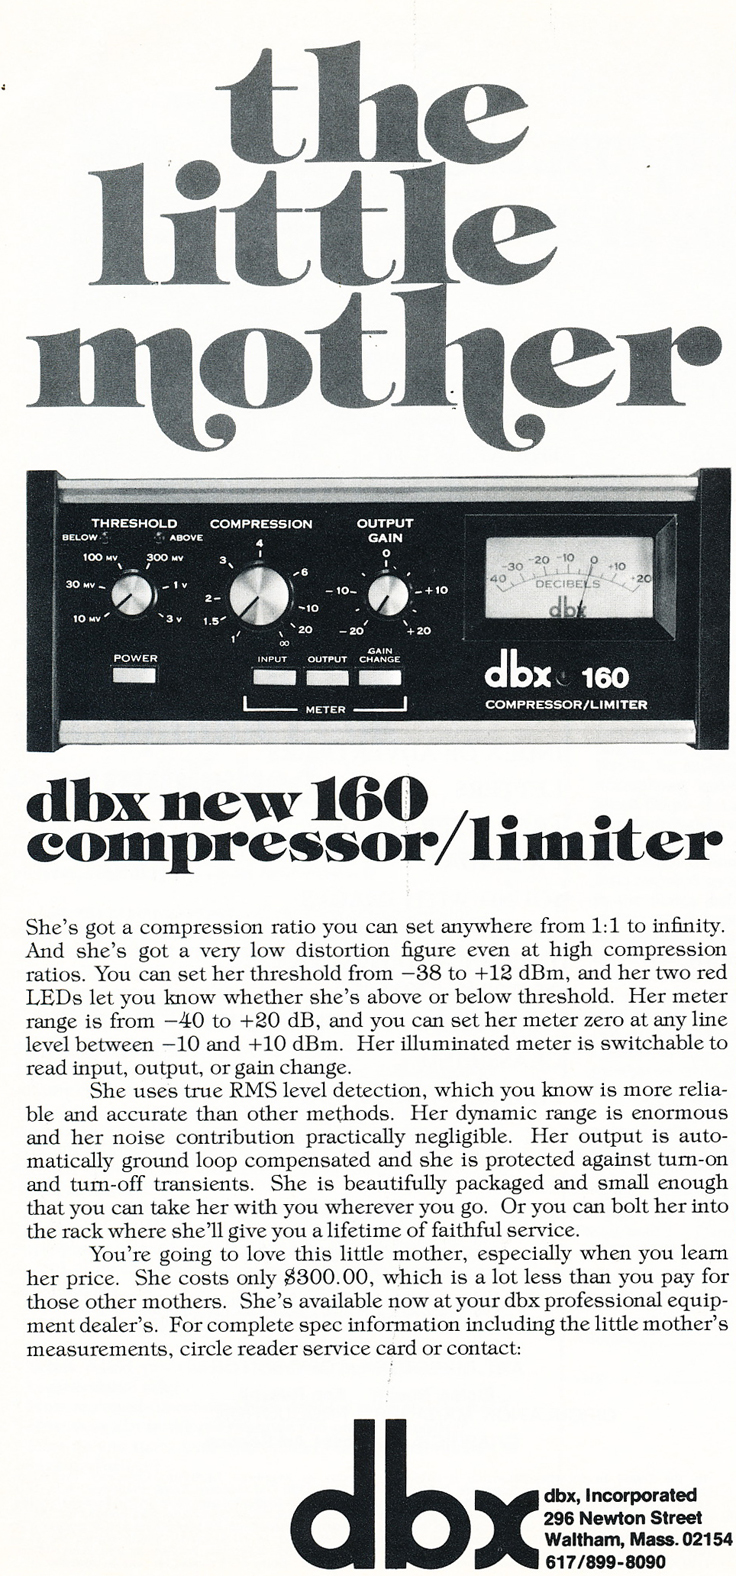 1975 ad for the dbx160 in Reel2ReelTexas.com's vintage recording collection